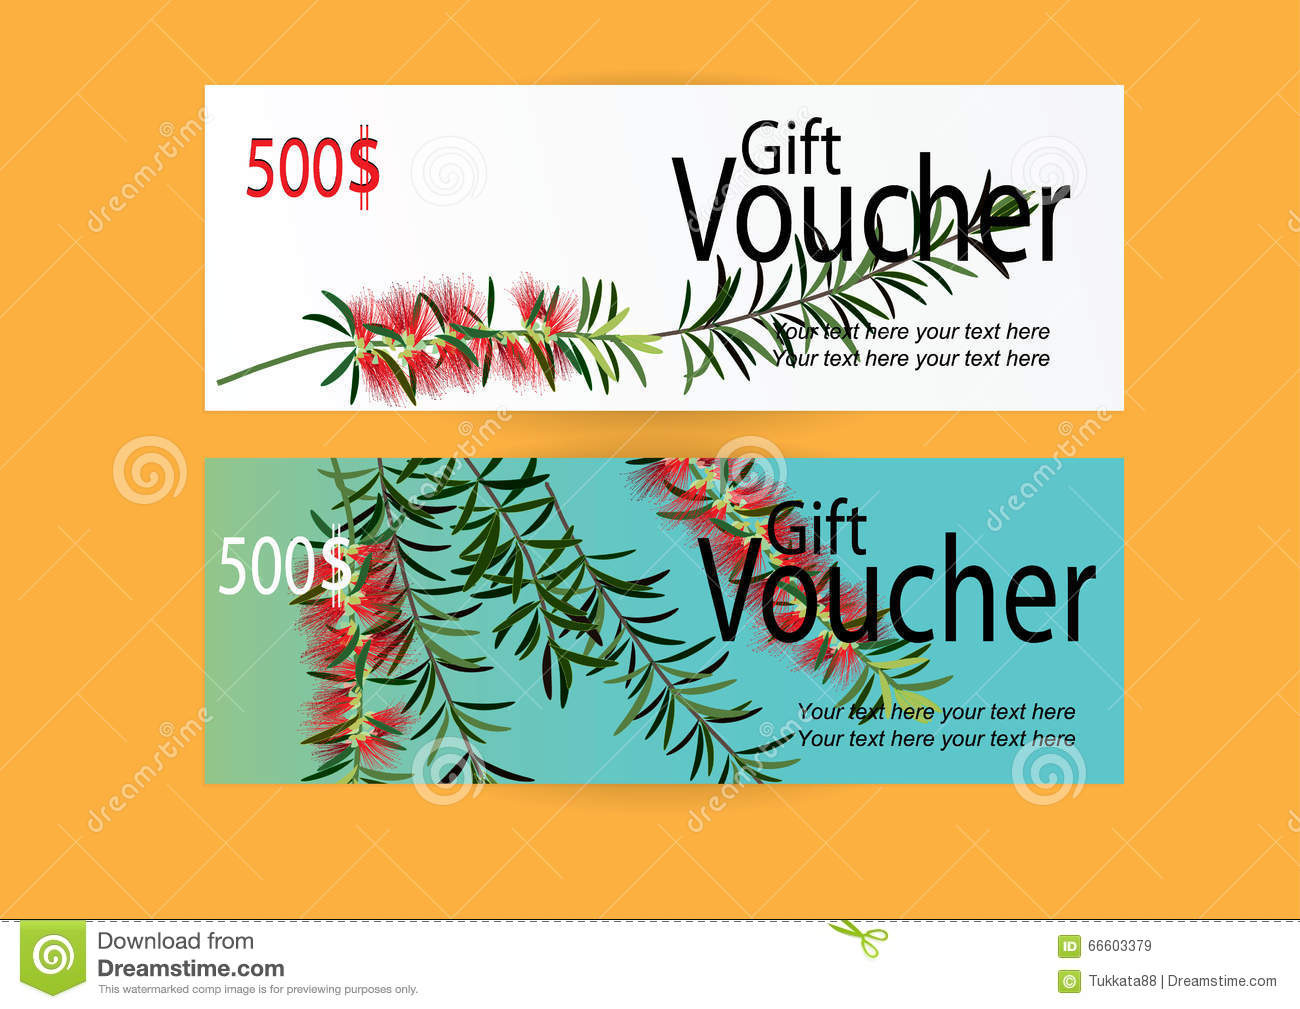 Gift Voucher For Marketing Promotion With Red Flower Background Stock Vector